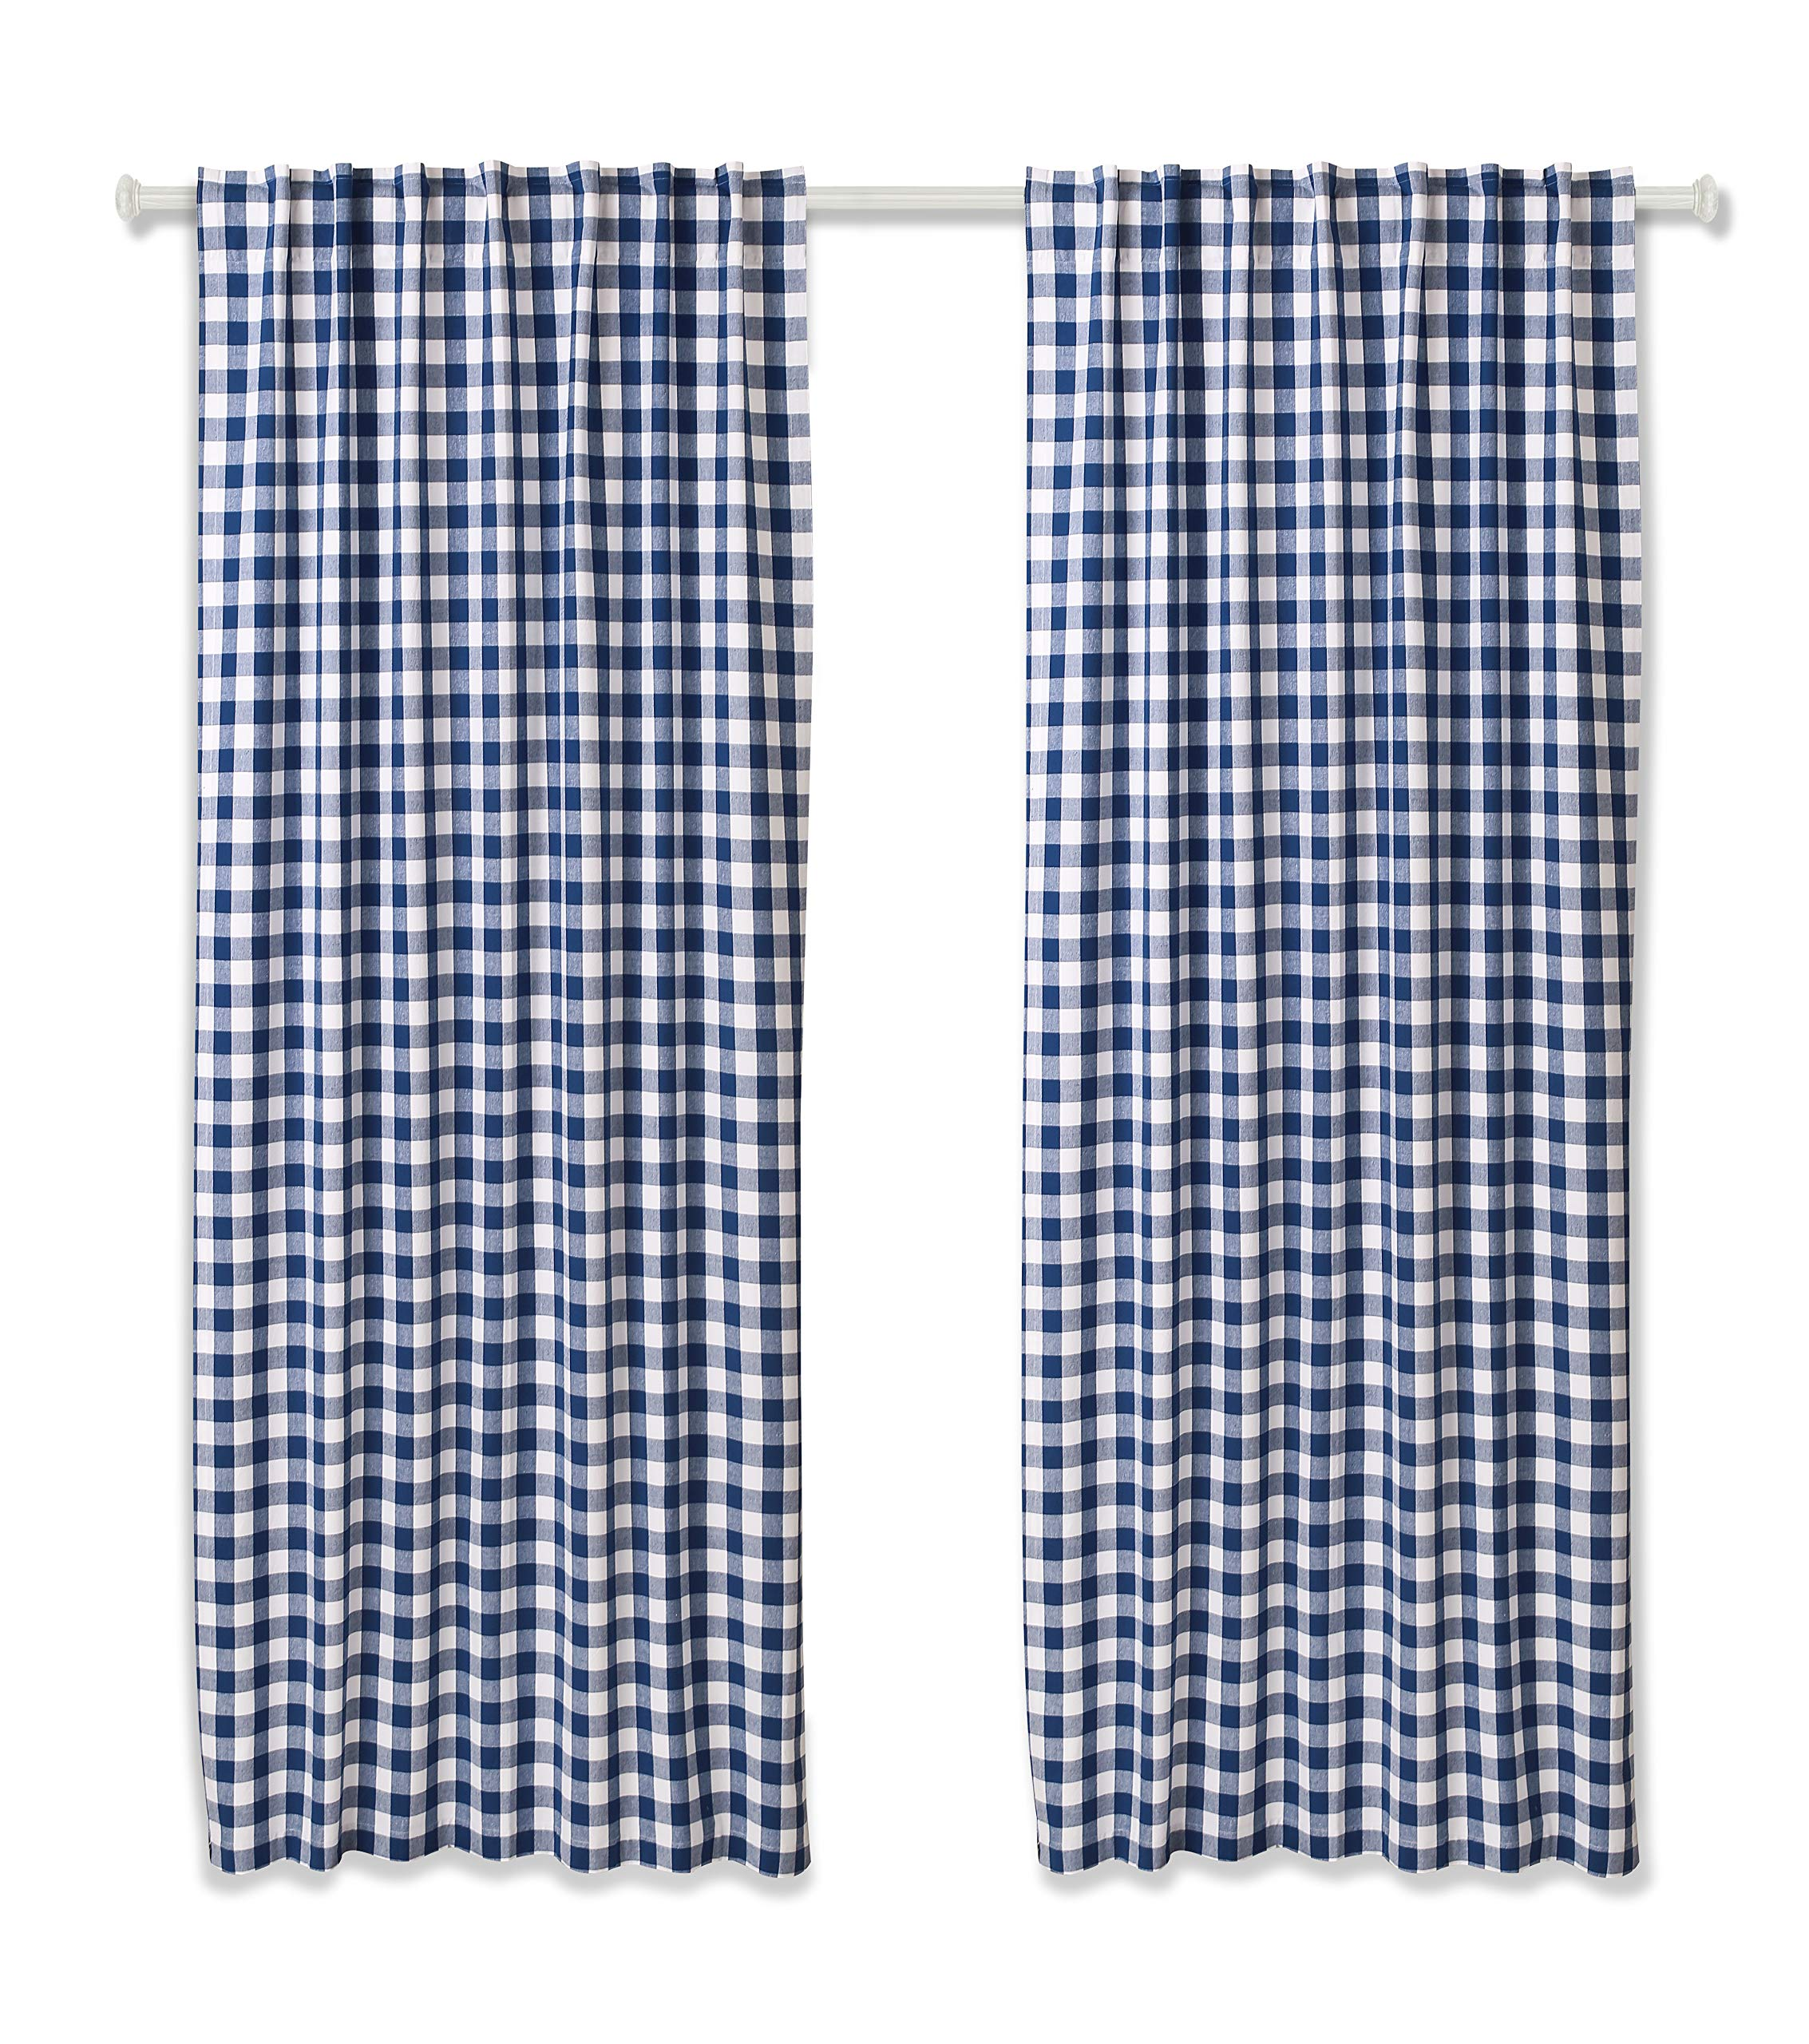 Cotton Clinic Gingham Buffalo Check Window Curtains 2 Panels 50x84, Curtains for Living Room, Curtains for Bedroom, Curtains 84 Inch Length, 2 Pack Set Cotton Tab Top Curtains Navy White by Cotton Clinic